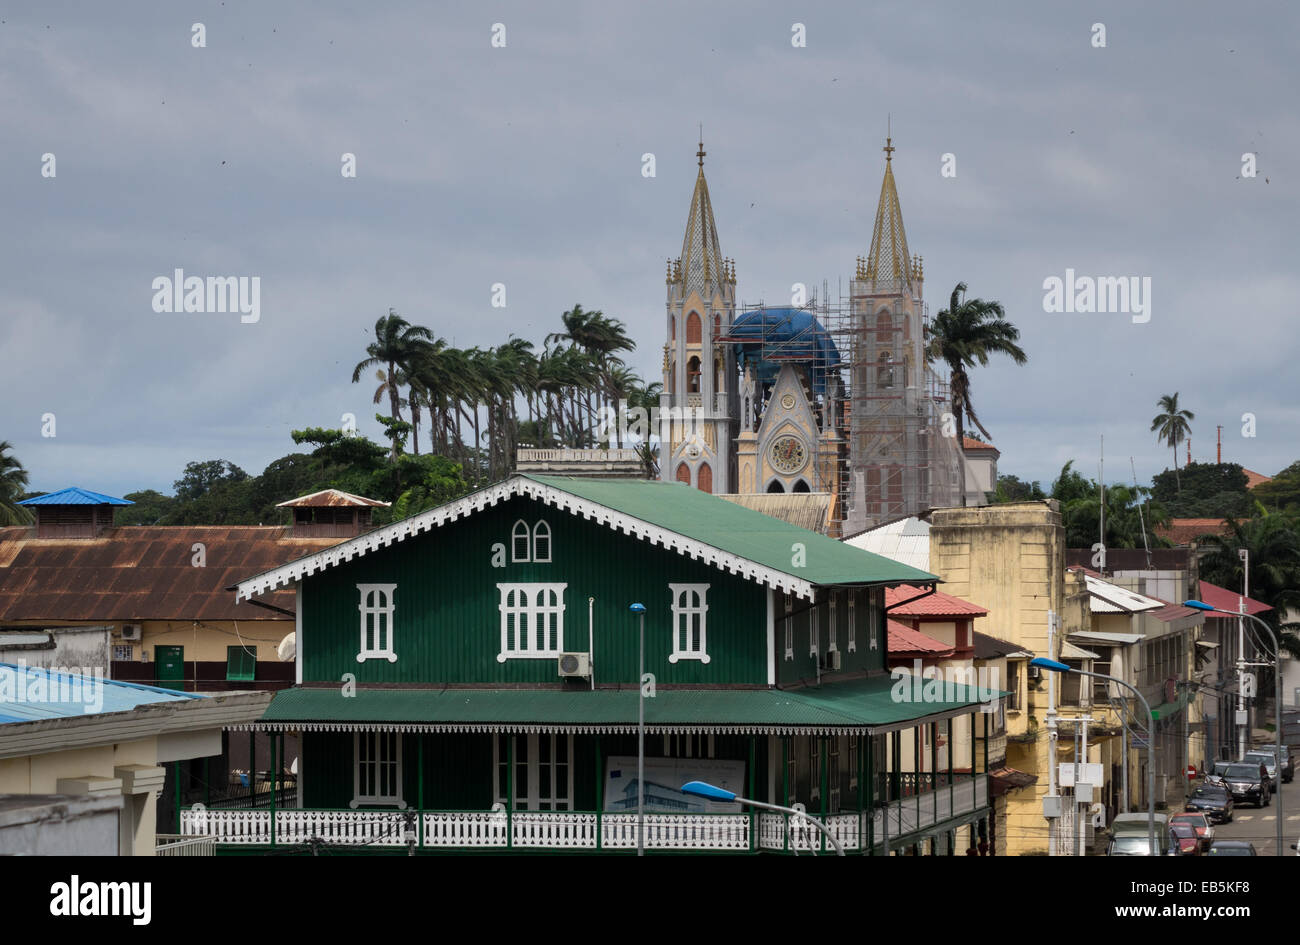 View over the rooftops of city towards the Spanish colonial cathedreal church in Malabo, Equatorial Guinea Stock Photo